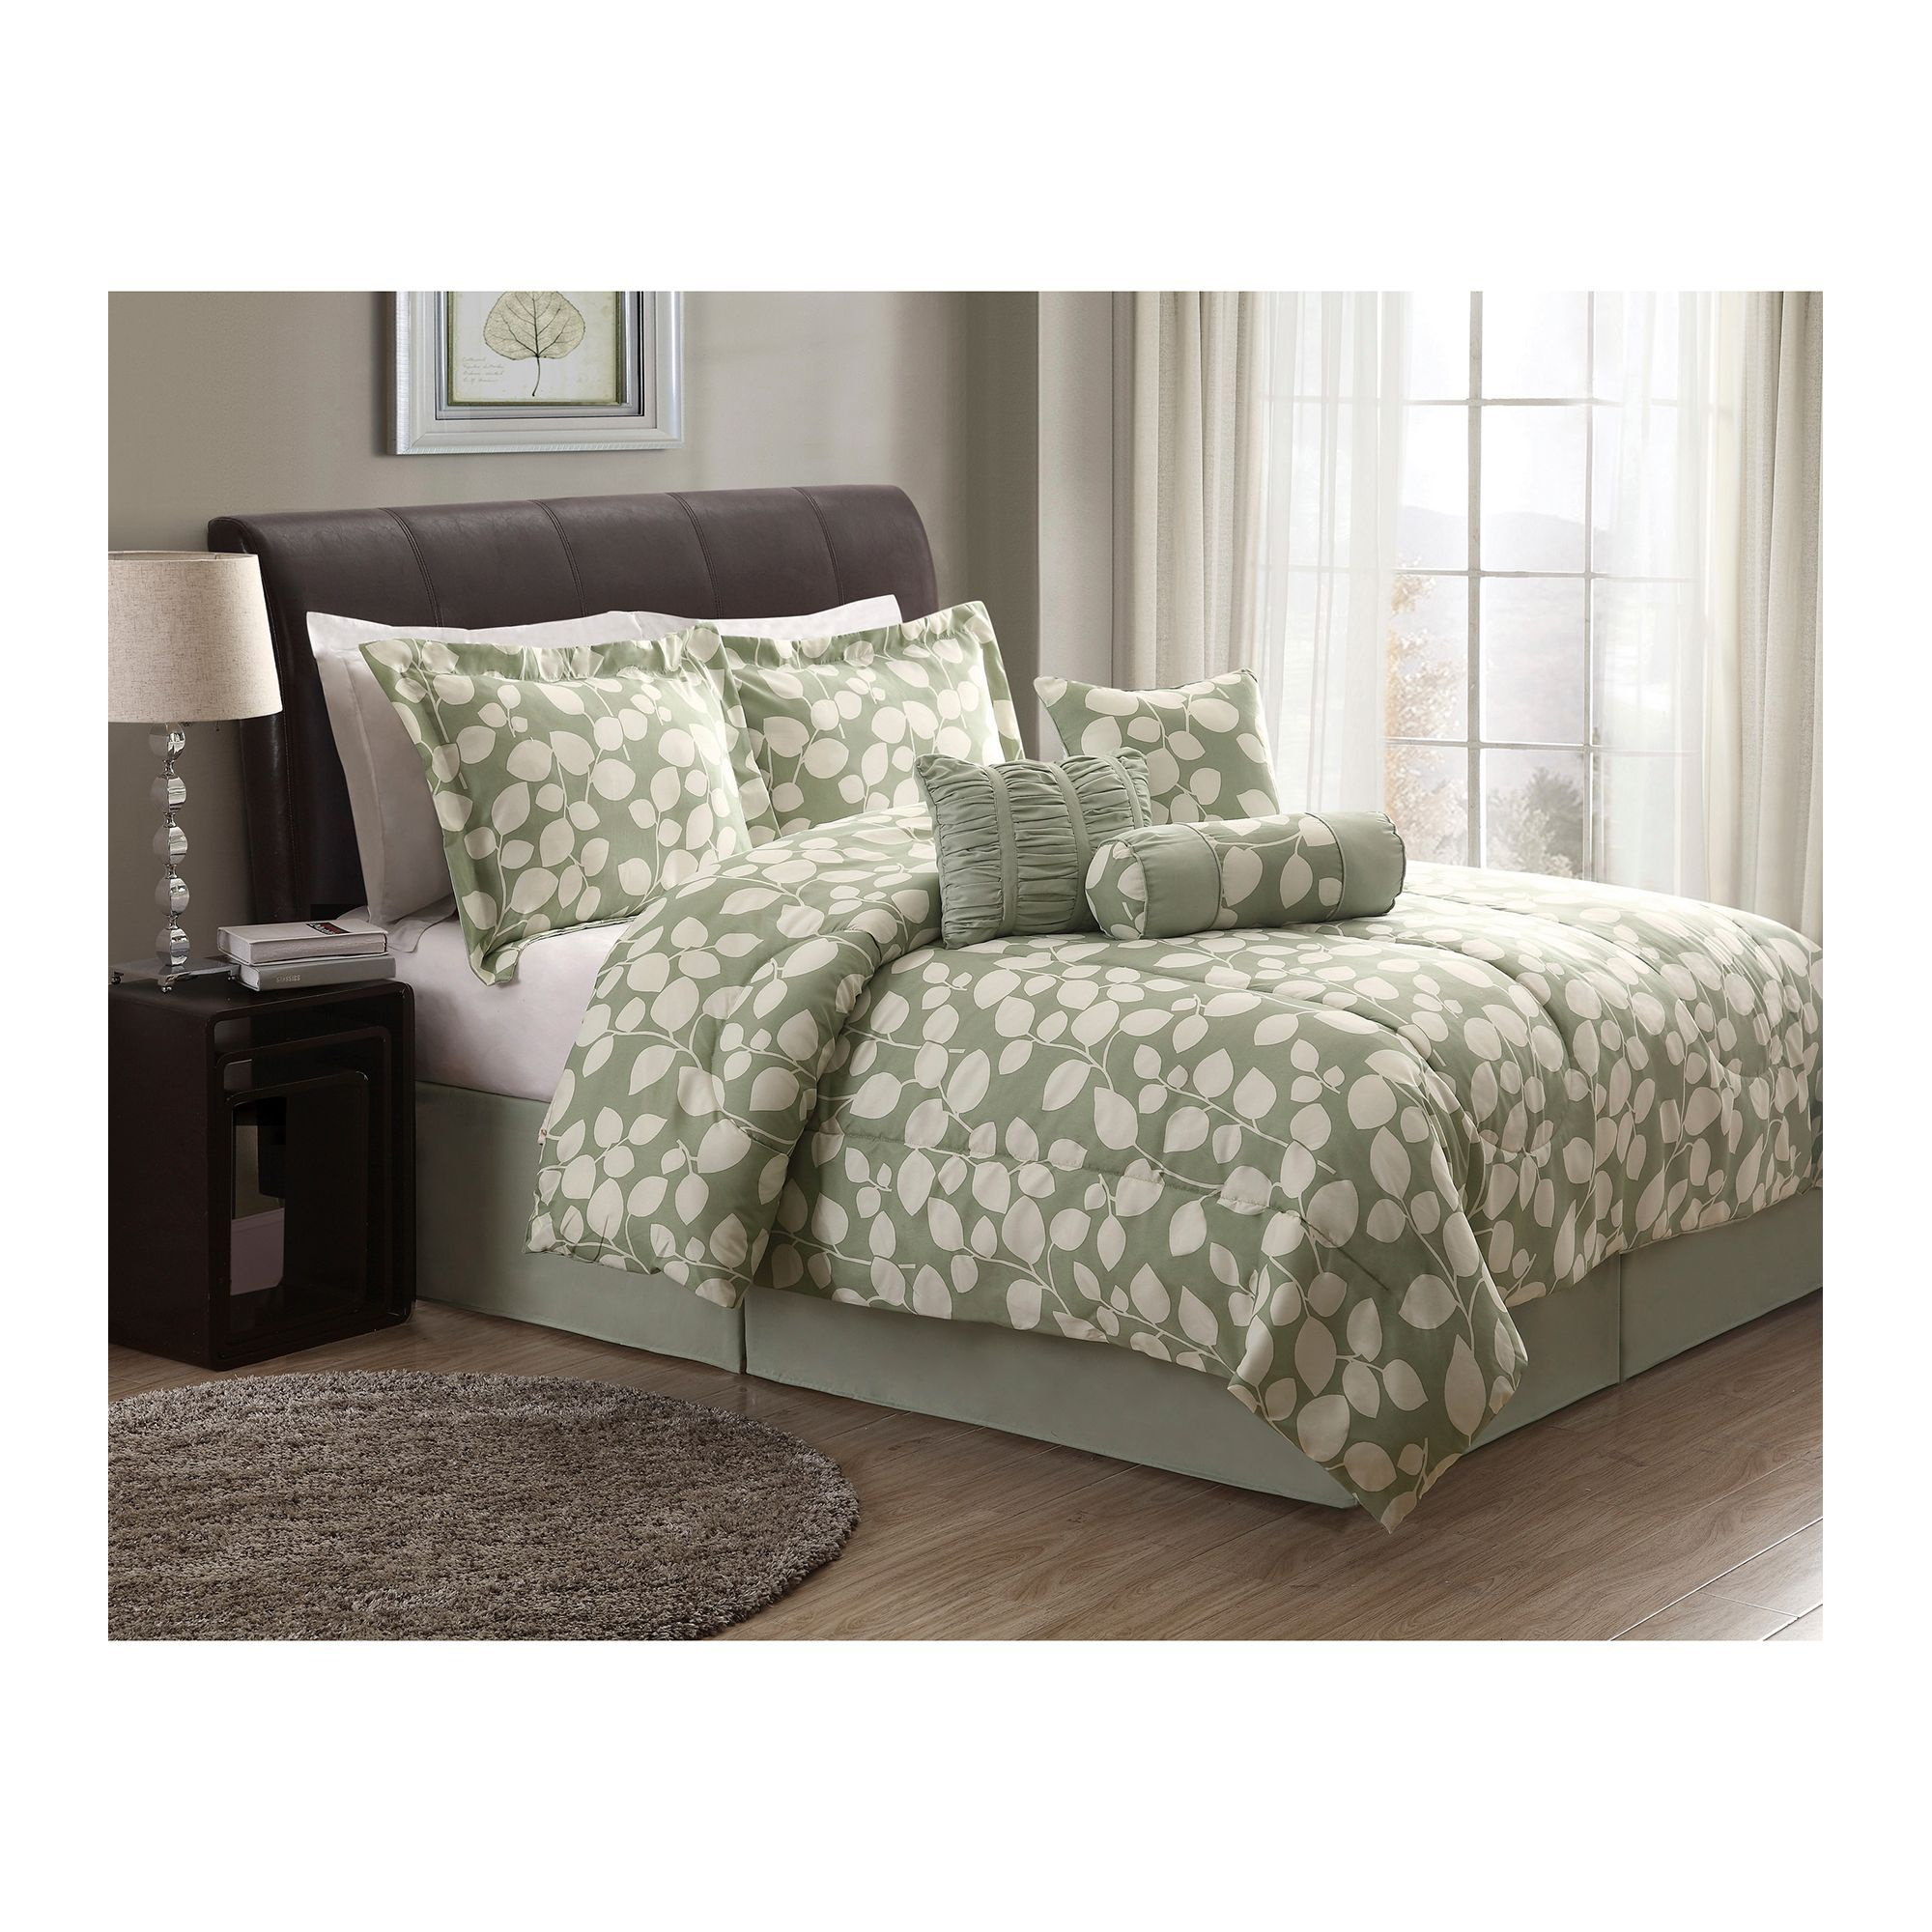 quilts bedspread bedspreads picture charles bed bedding historic king sage p charleston matelasse of